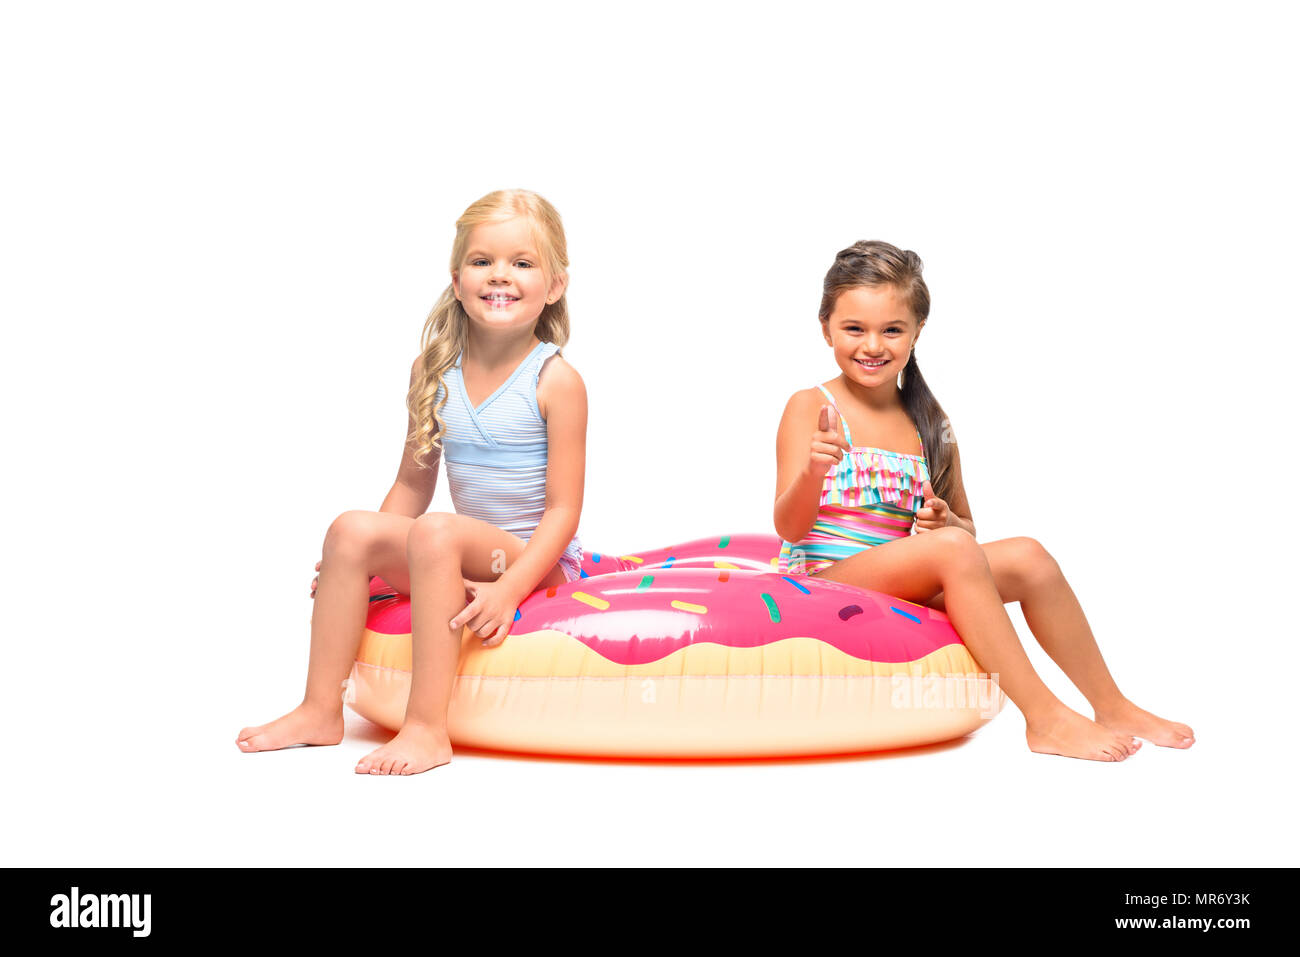 0c57533000 adorable little girls in swimsuits sitting on swim tube and smiling at  camera isolated on white